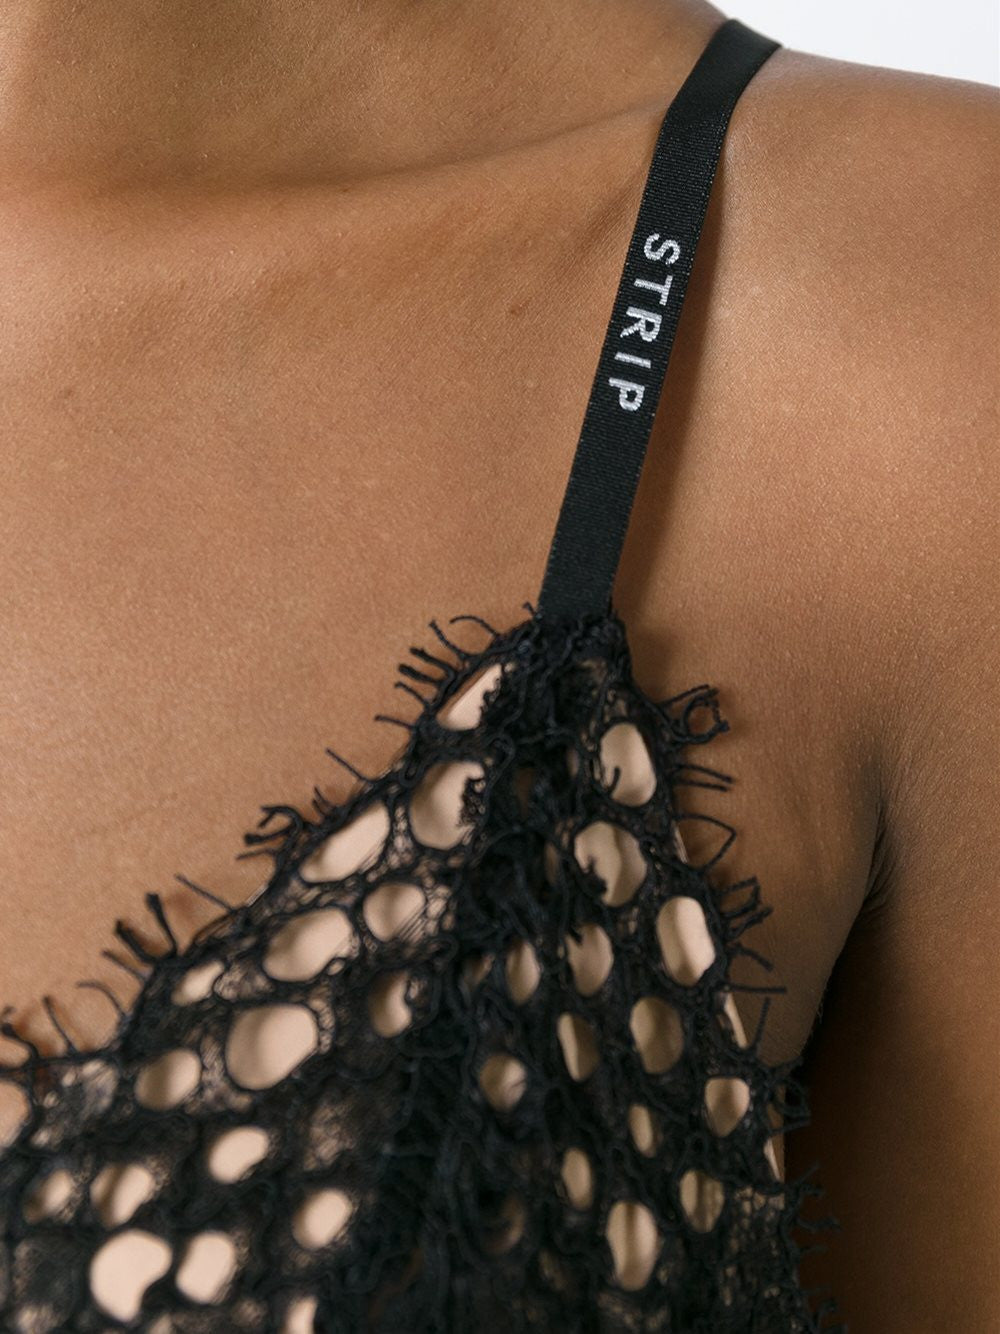 Silk 'Strip' Bralette | 109895P16 FB6282P16